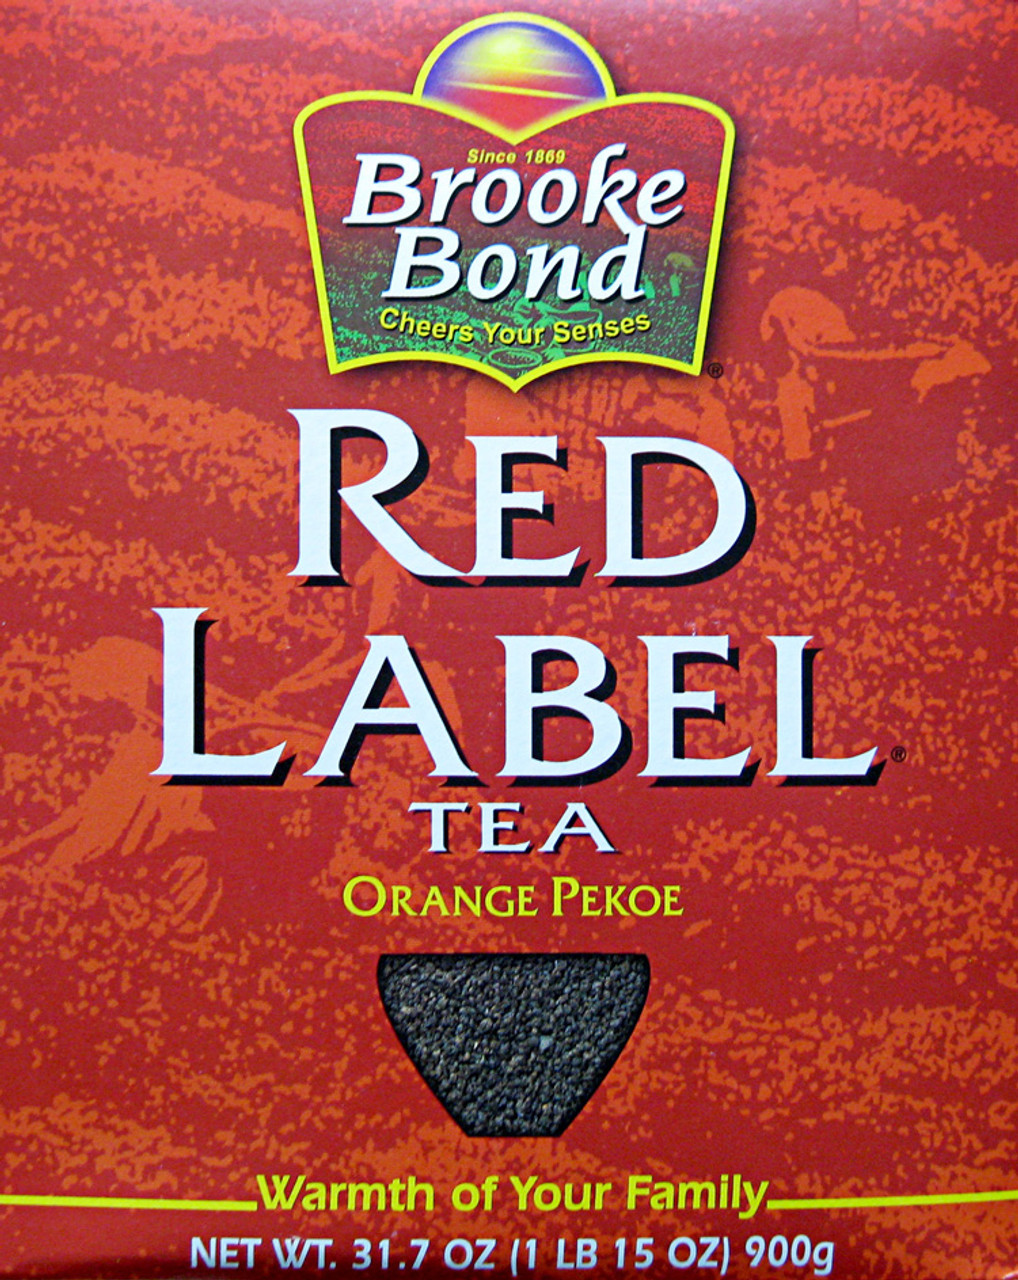 Brooke Bond Red Label Orange Pekoe Tea